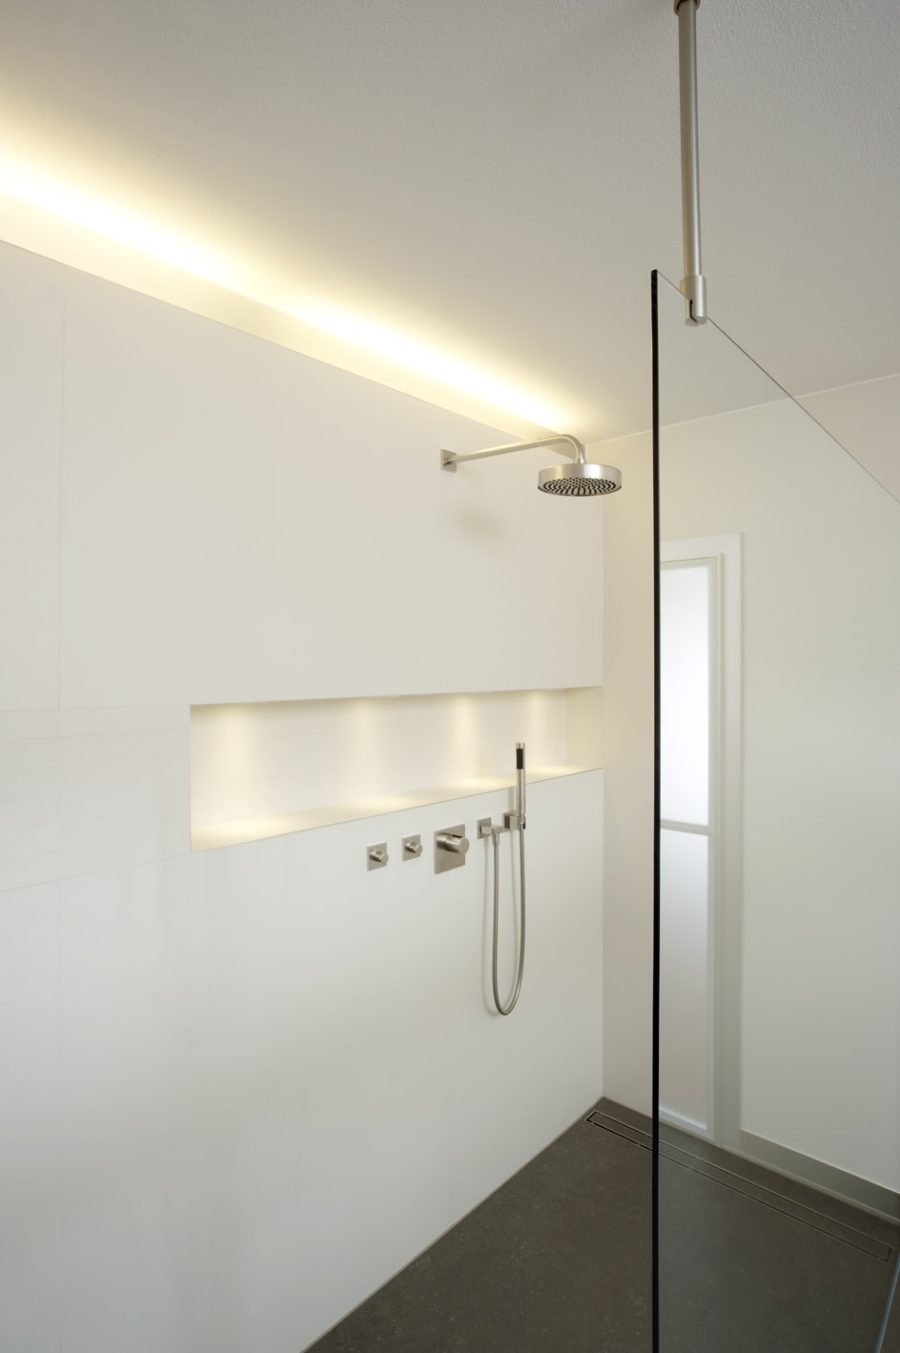 of unique knowee led shower graphics lighting light elegant for awesome recessed fixtures bathrooms